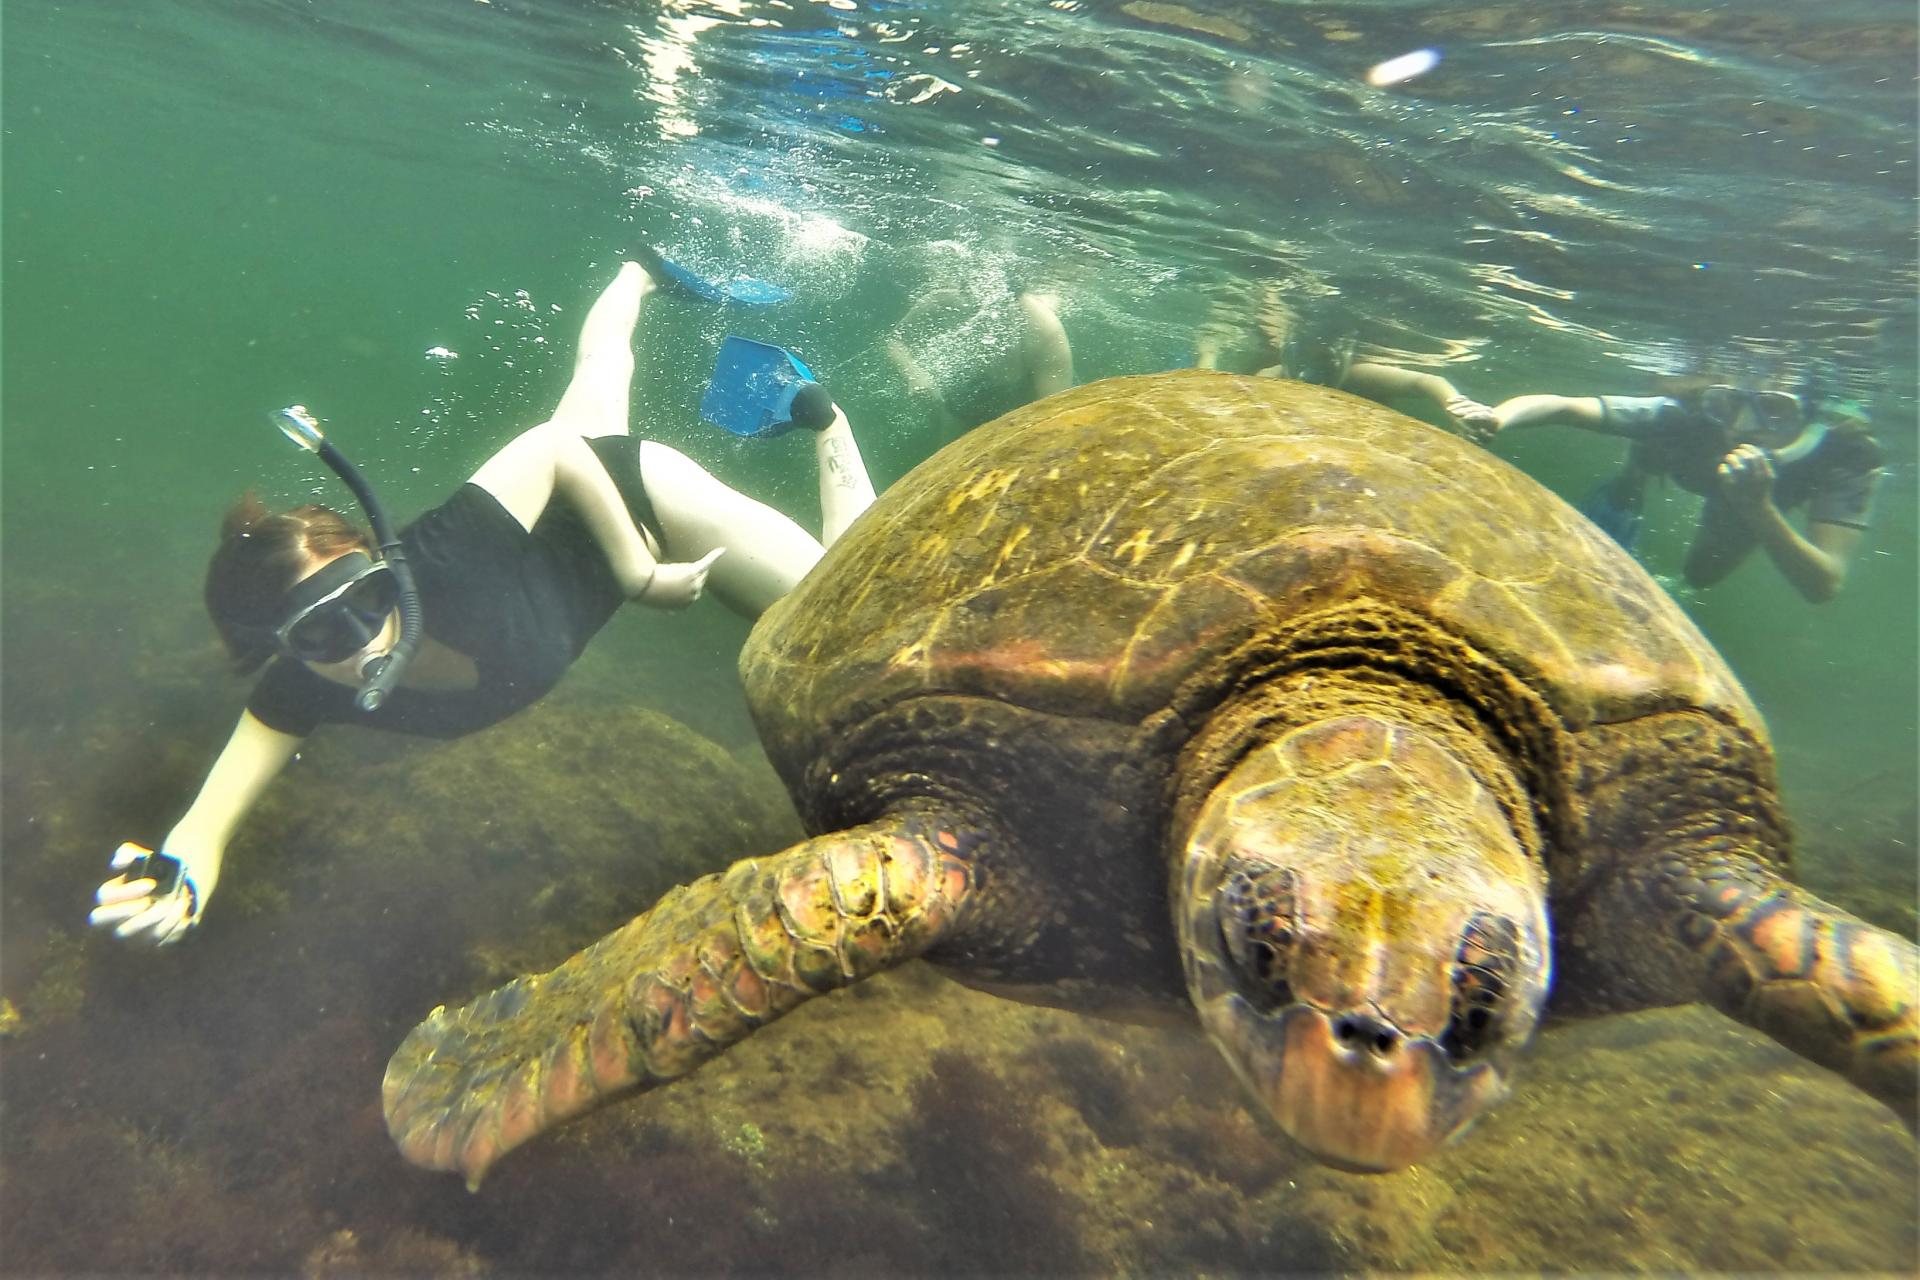 Snorkeling with sea turtles in the Galapagos